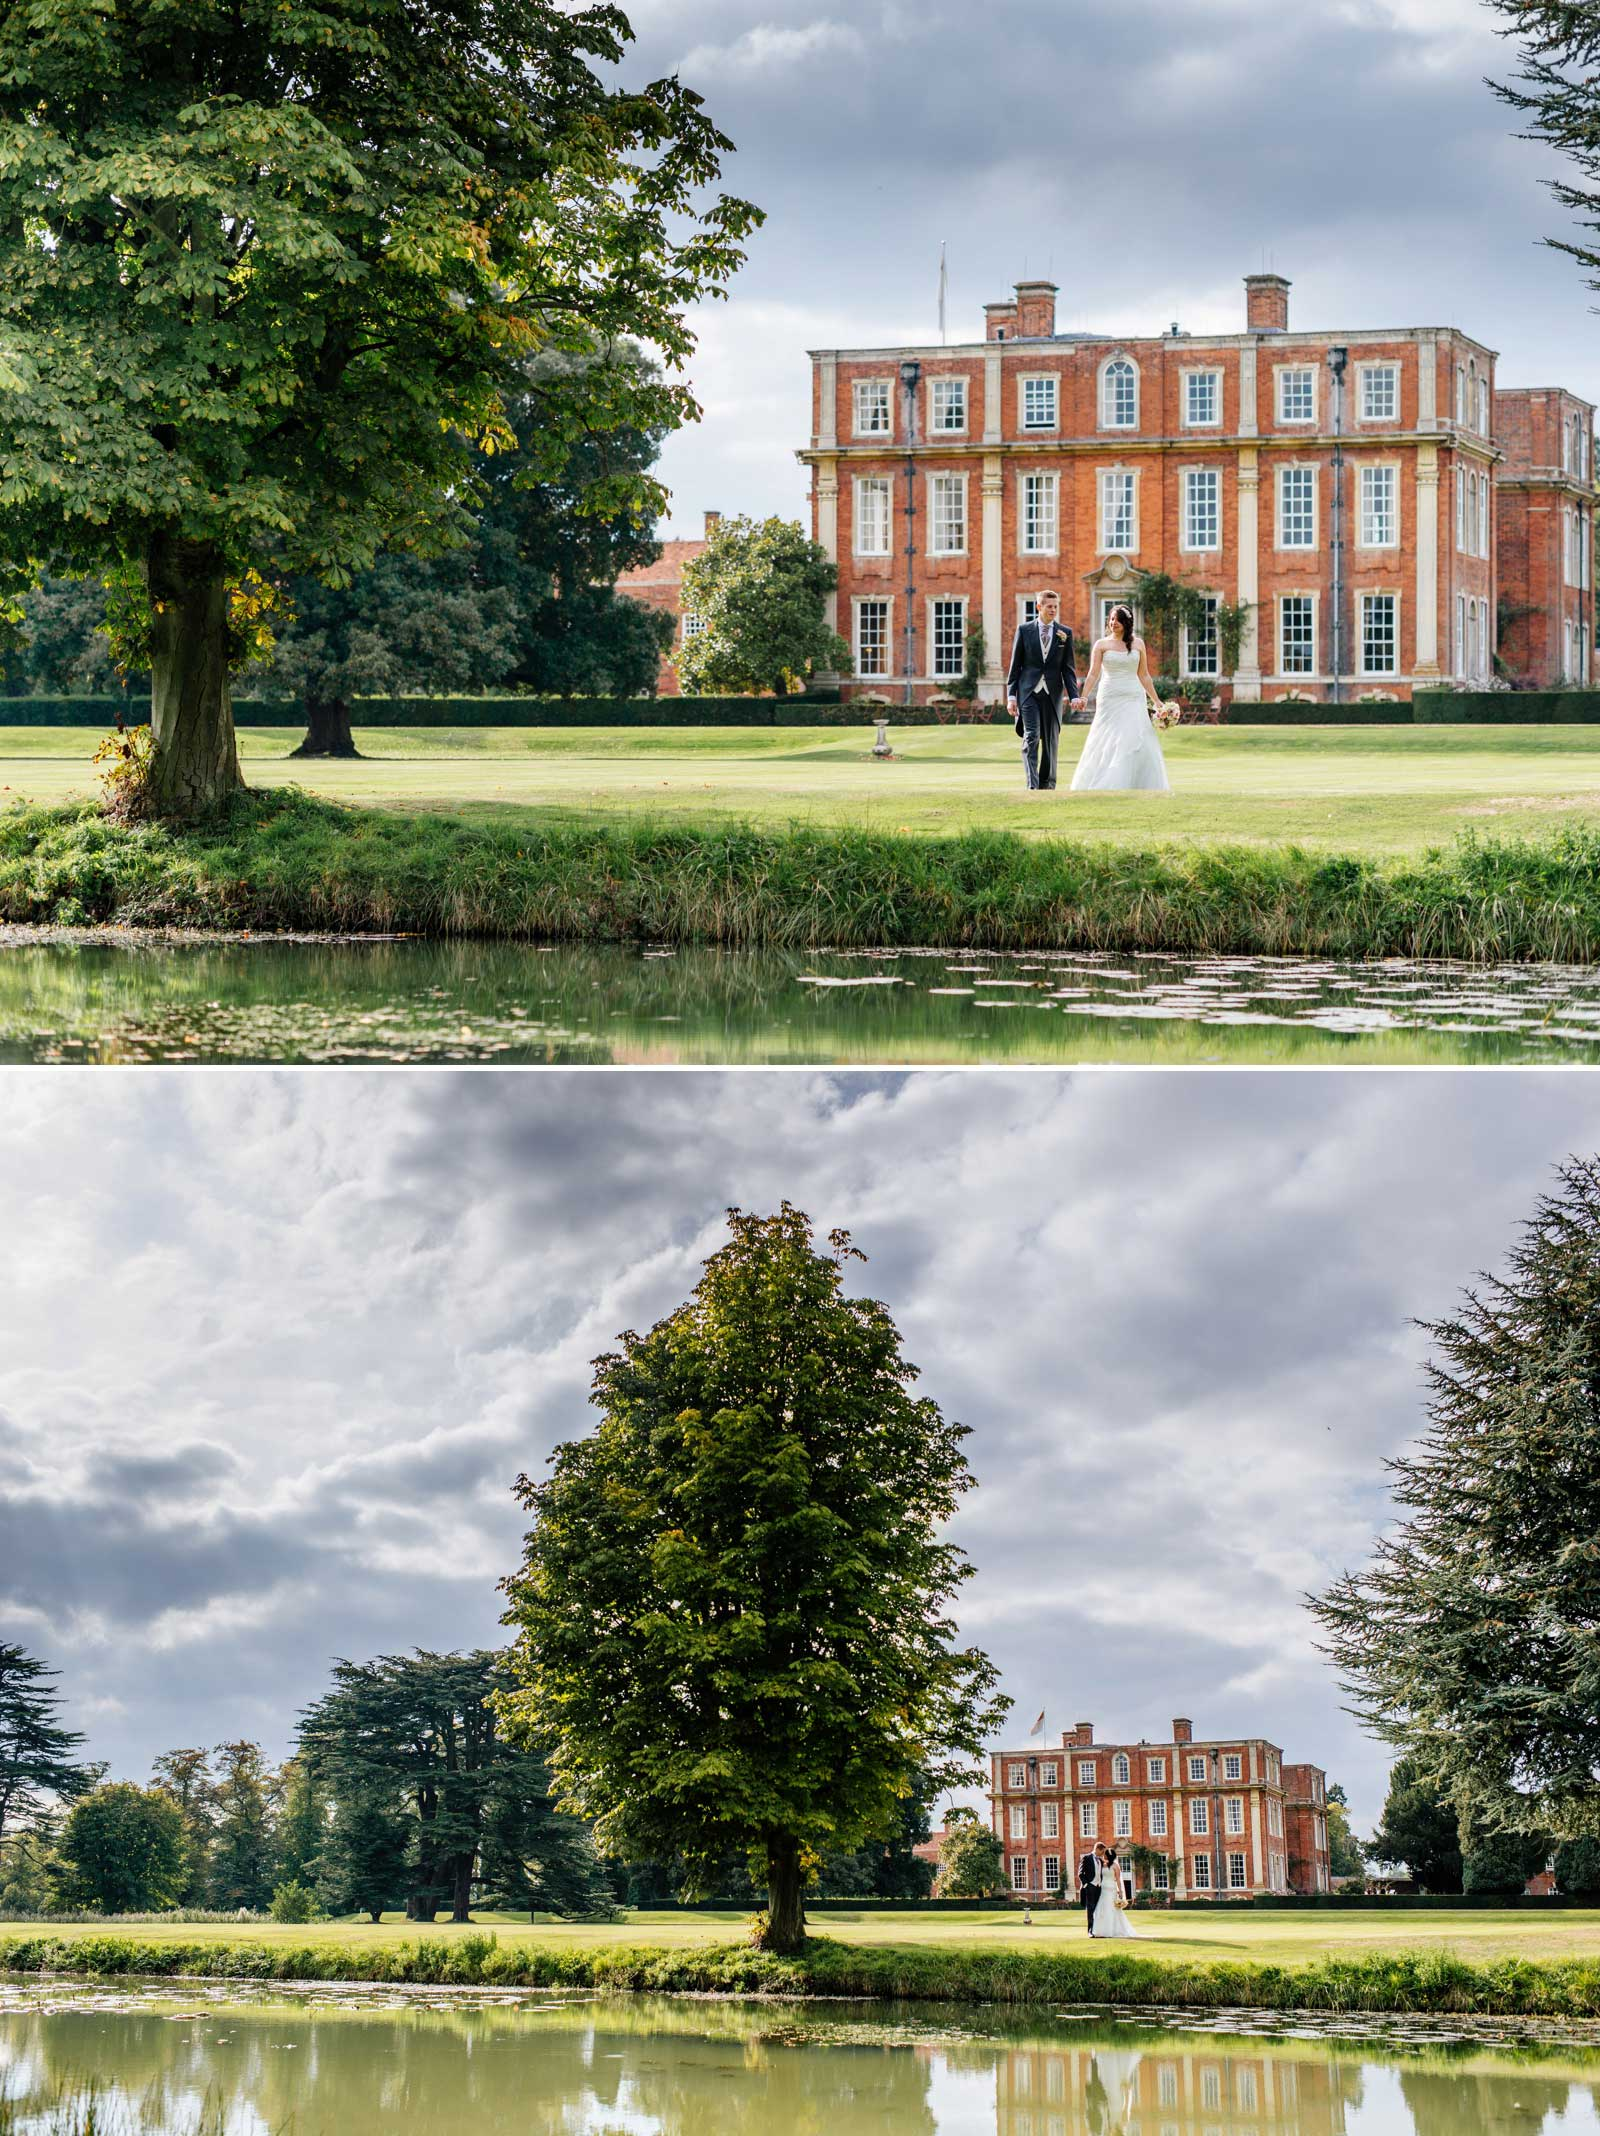 Chicheley Hall Wedding Photography